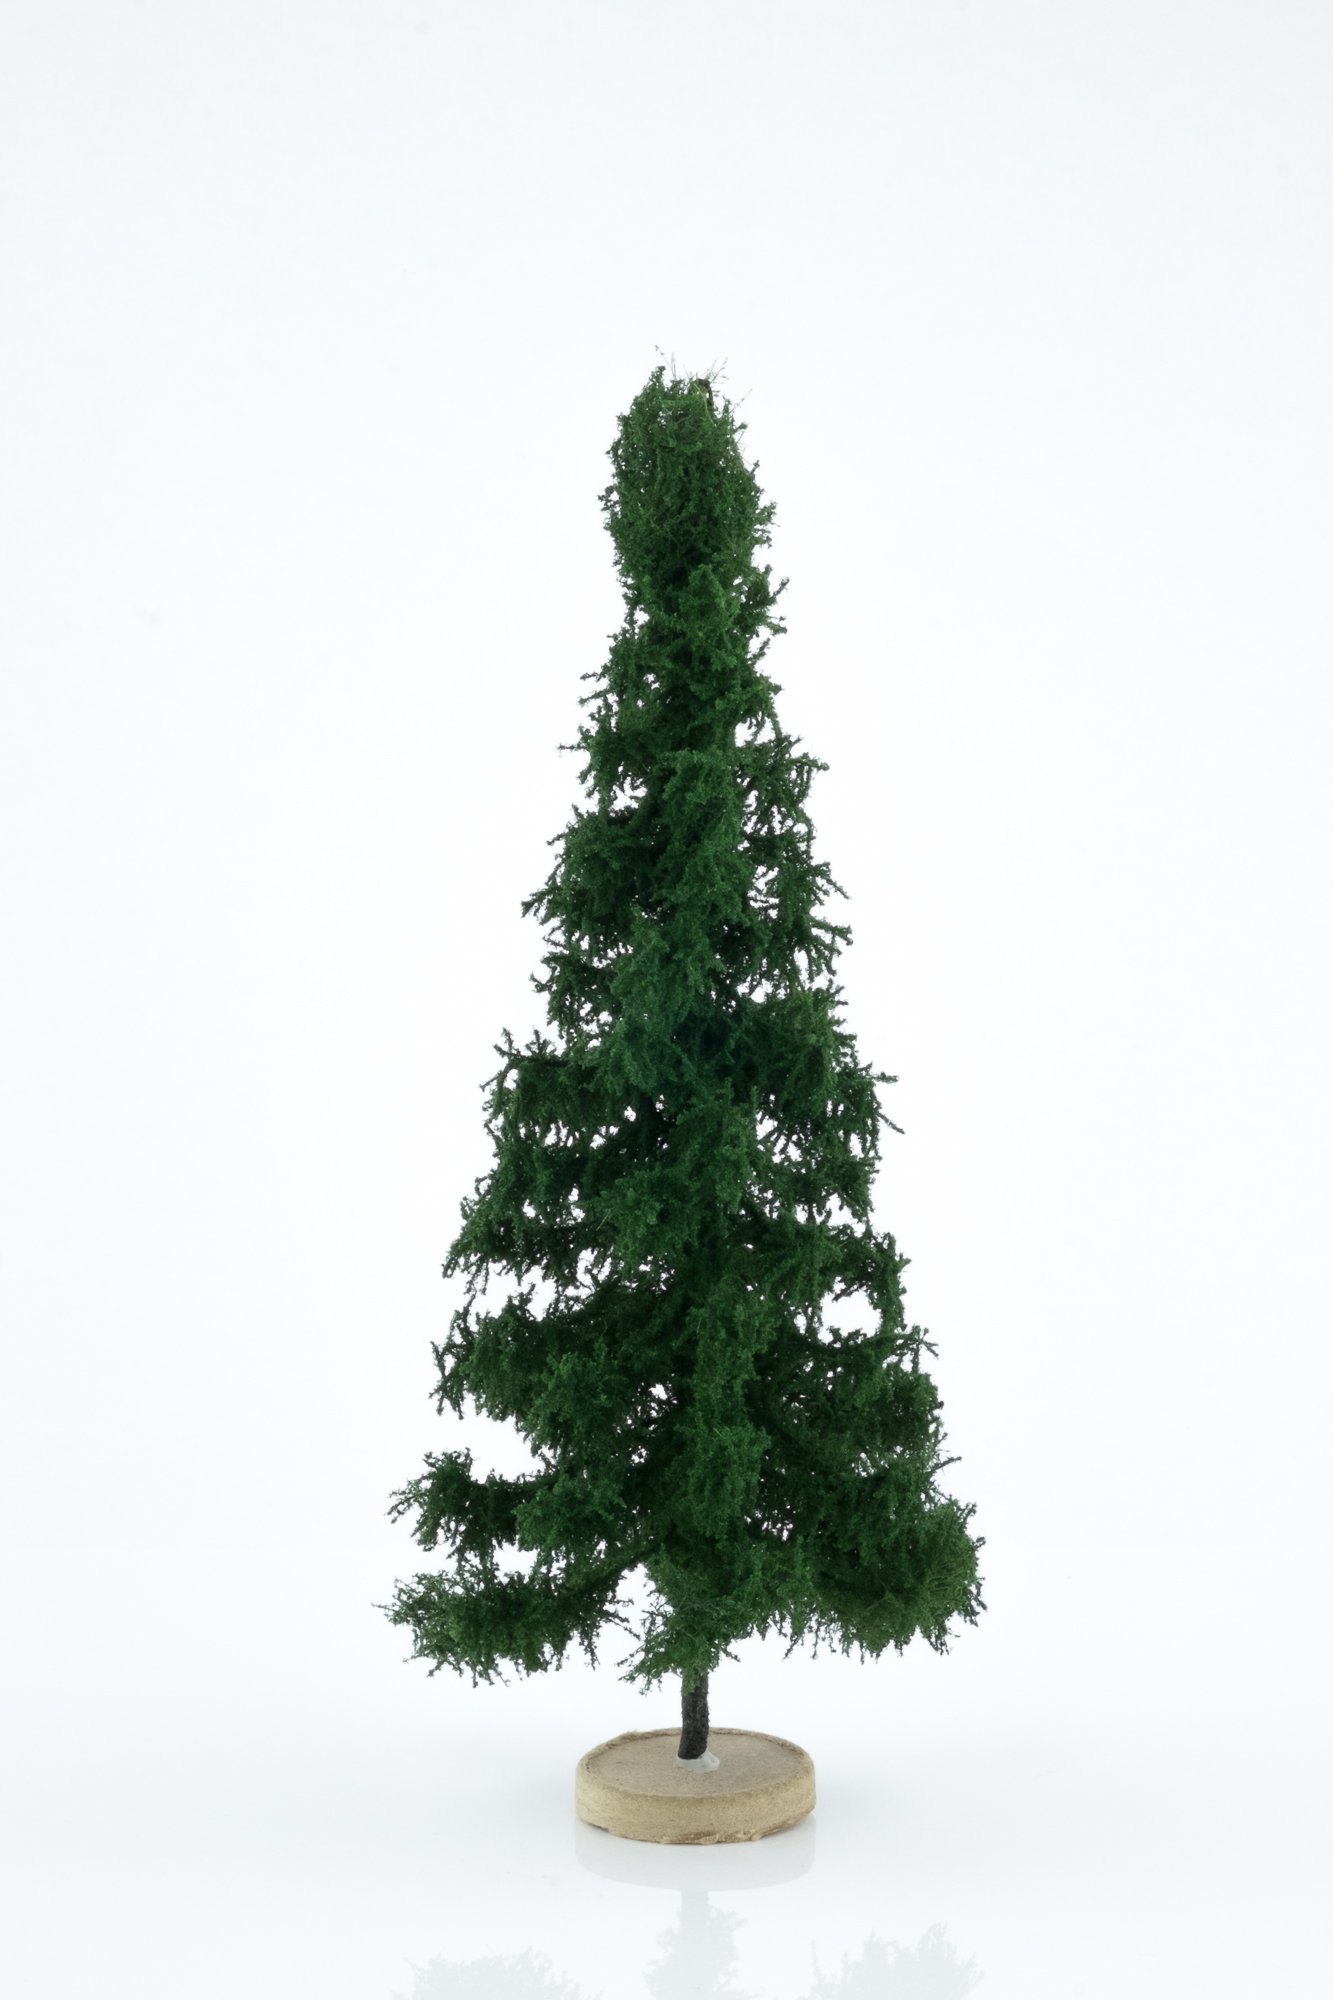 Hand-made, green, spruce tree model. Size between 18 and 20 cm. Made from high quality model supplies by Primo Models.